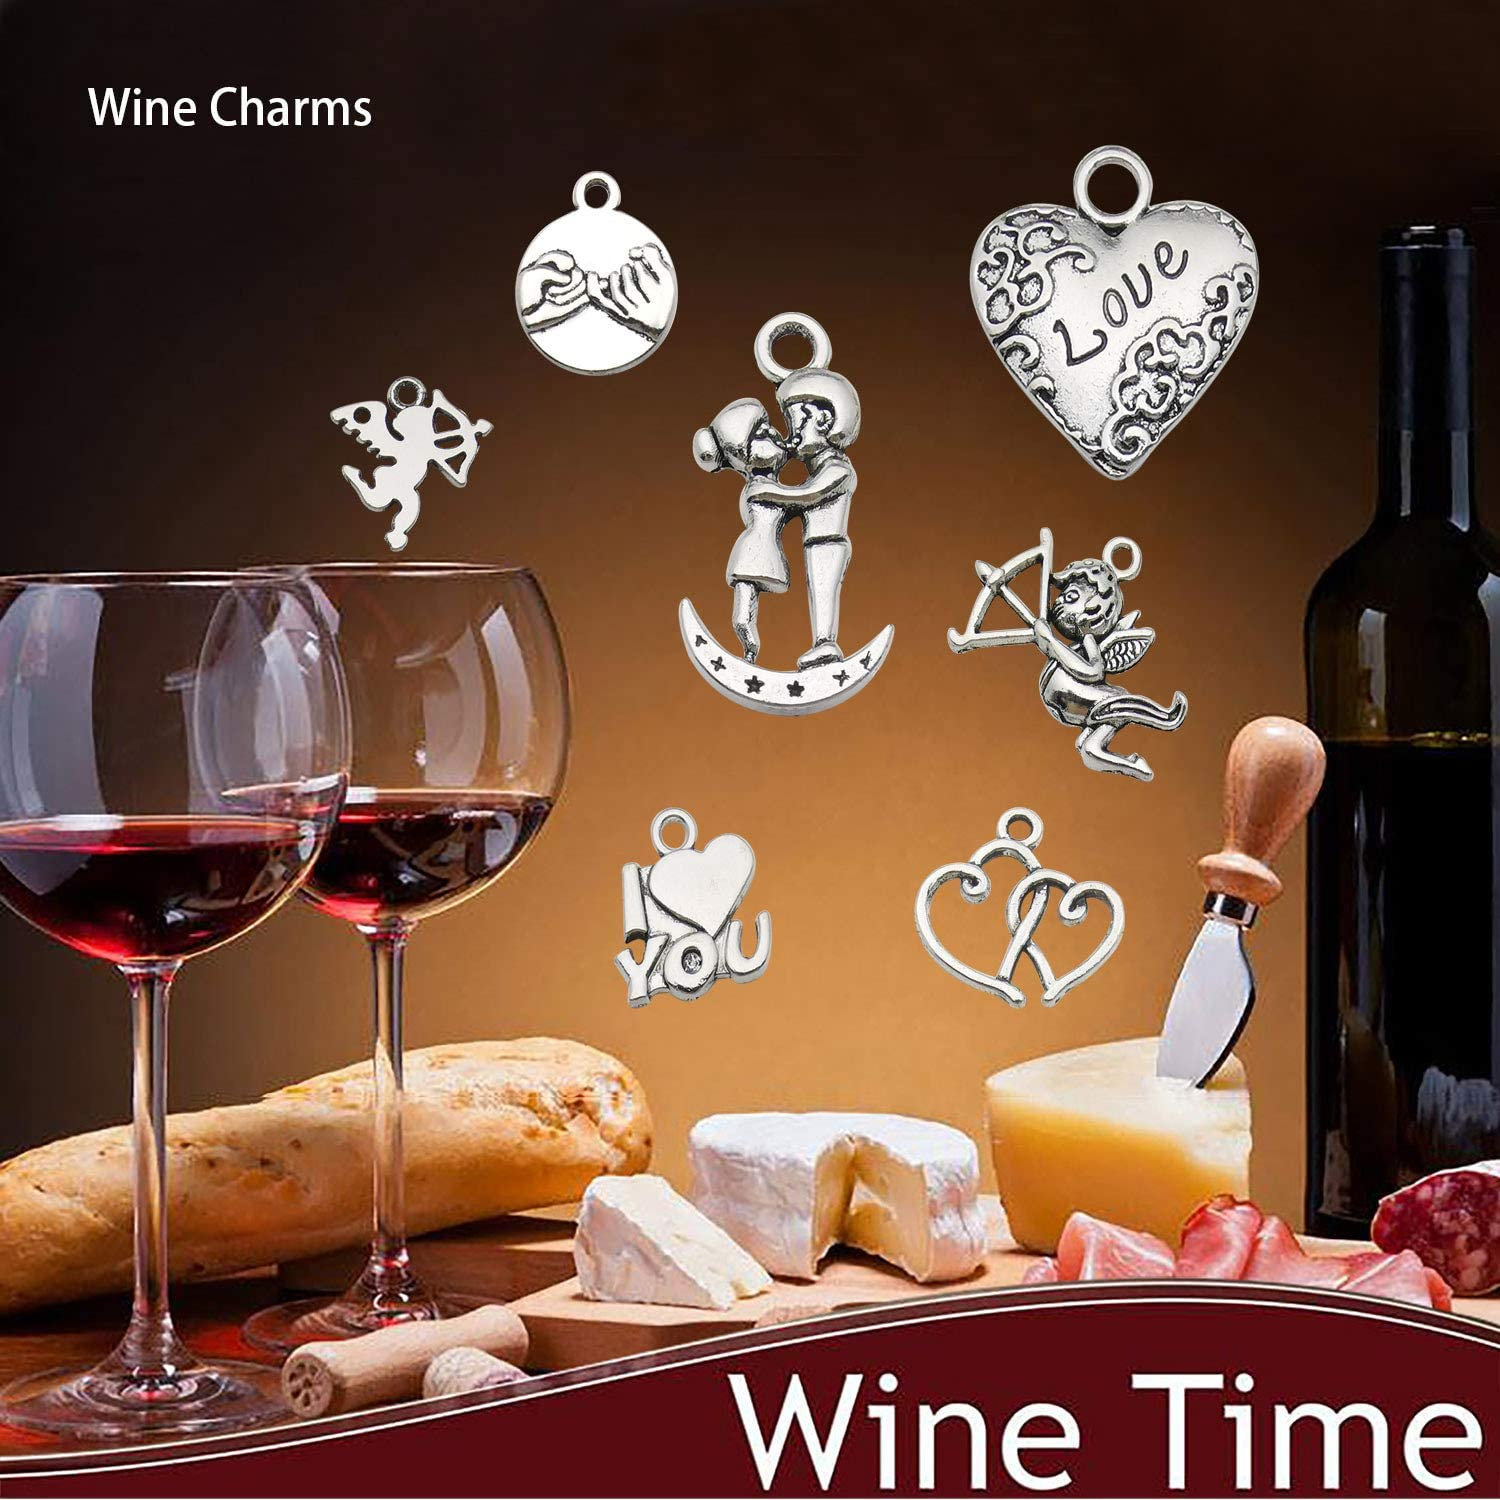 Wedding or Event Package Wine Charms Fifty Wine Charms High Grade Handmade in the United States Using Natural Stones and Glass Beads